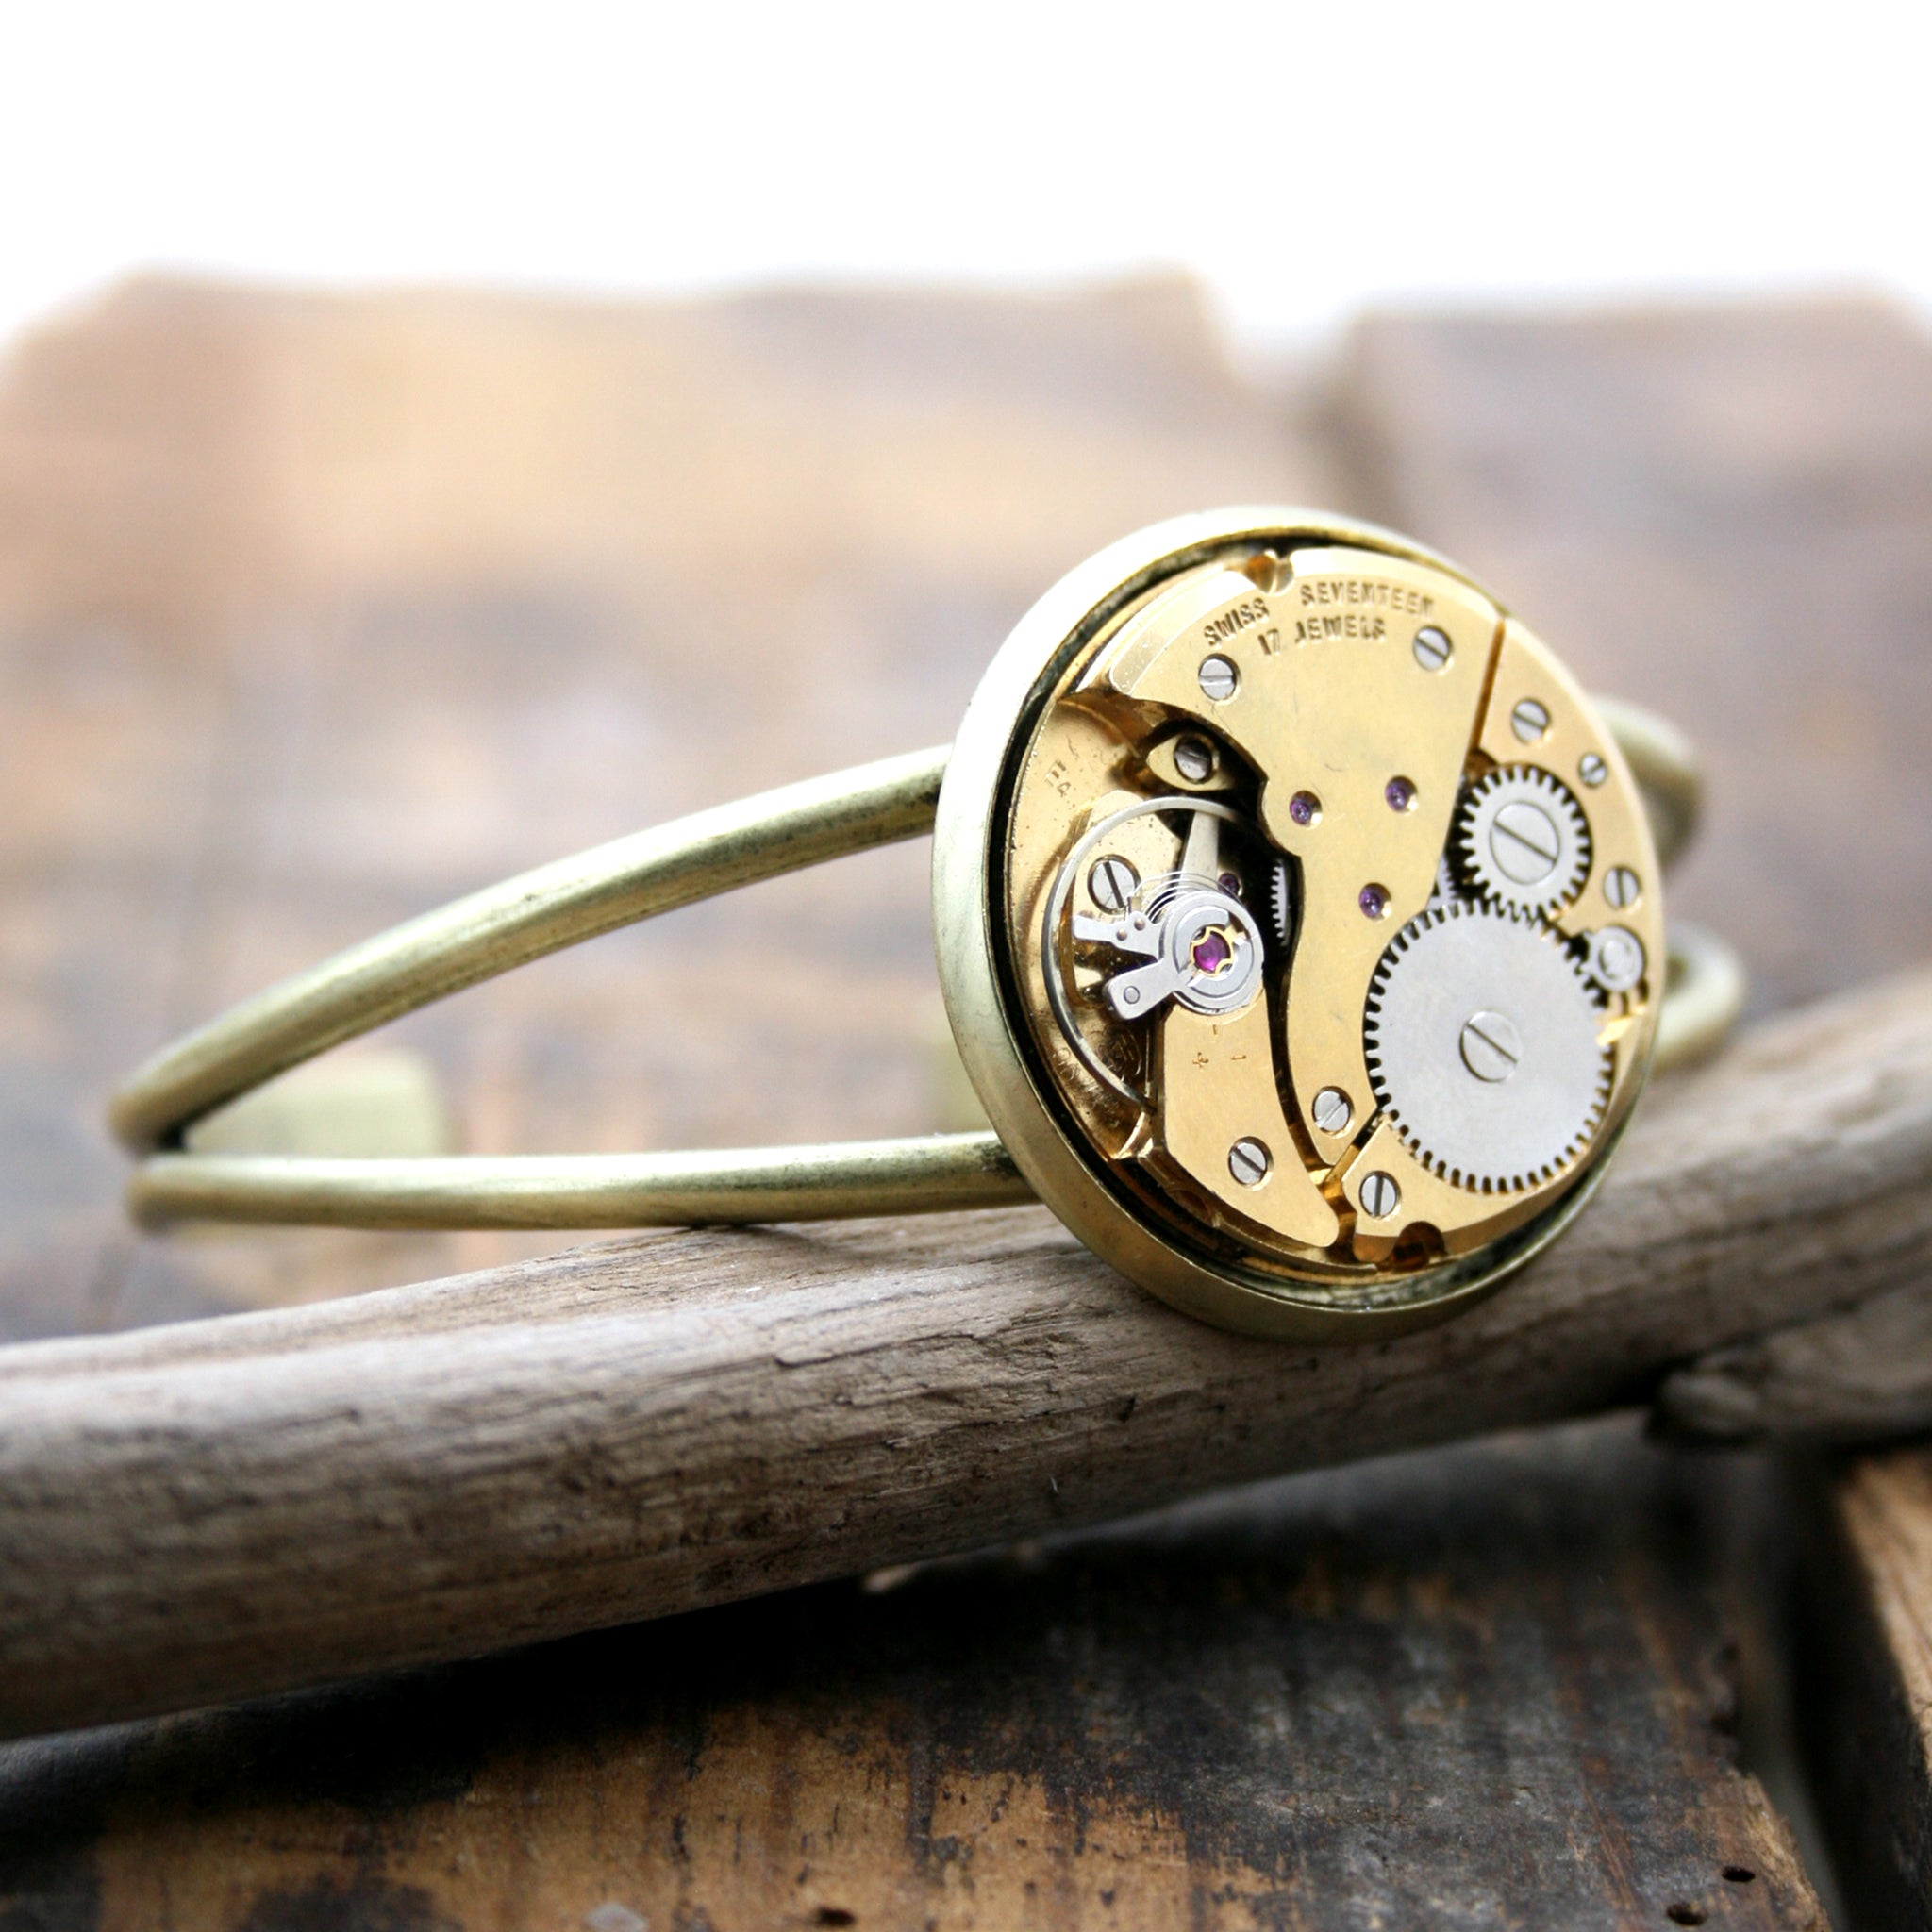 Gold Bangle Bracelet with steampunk watch movement